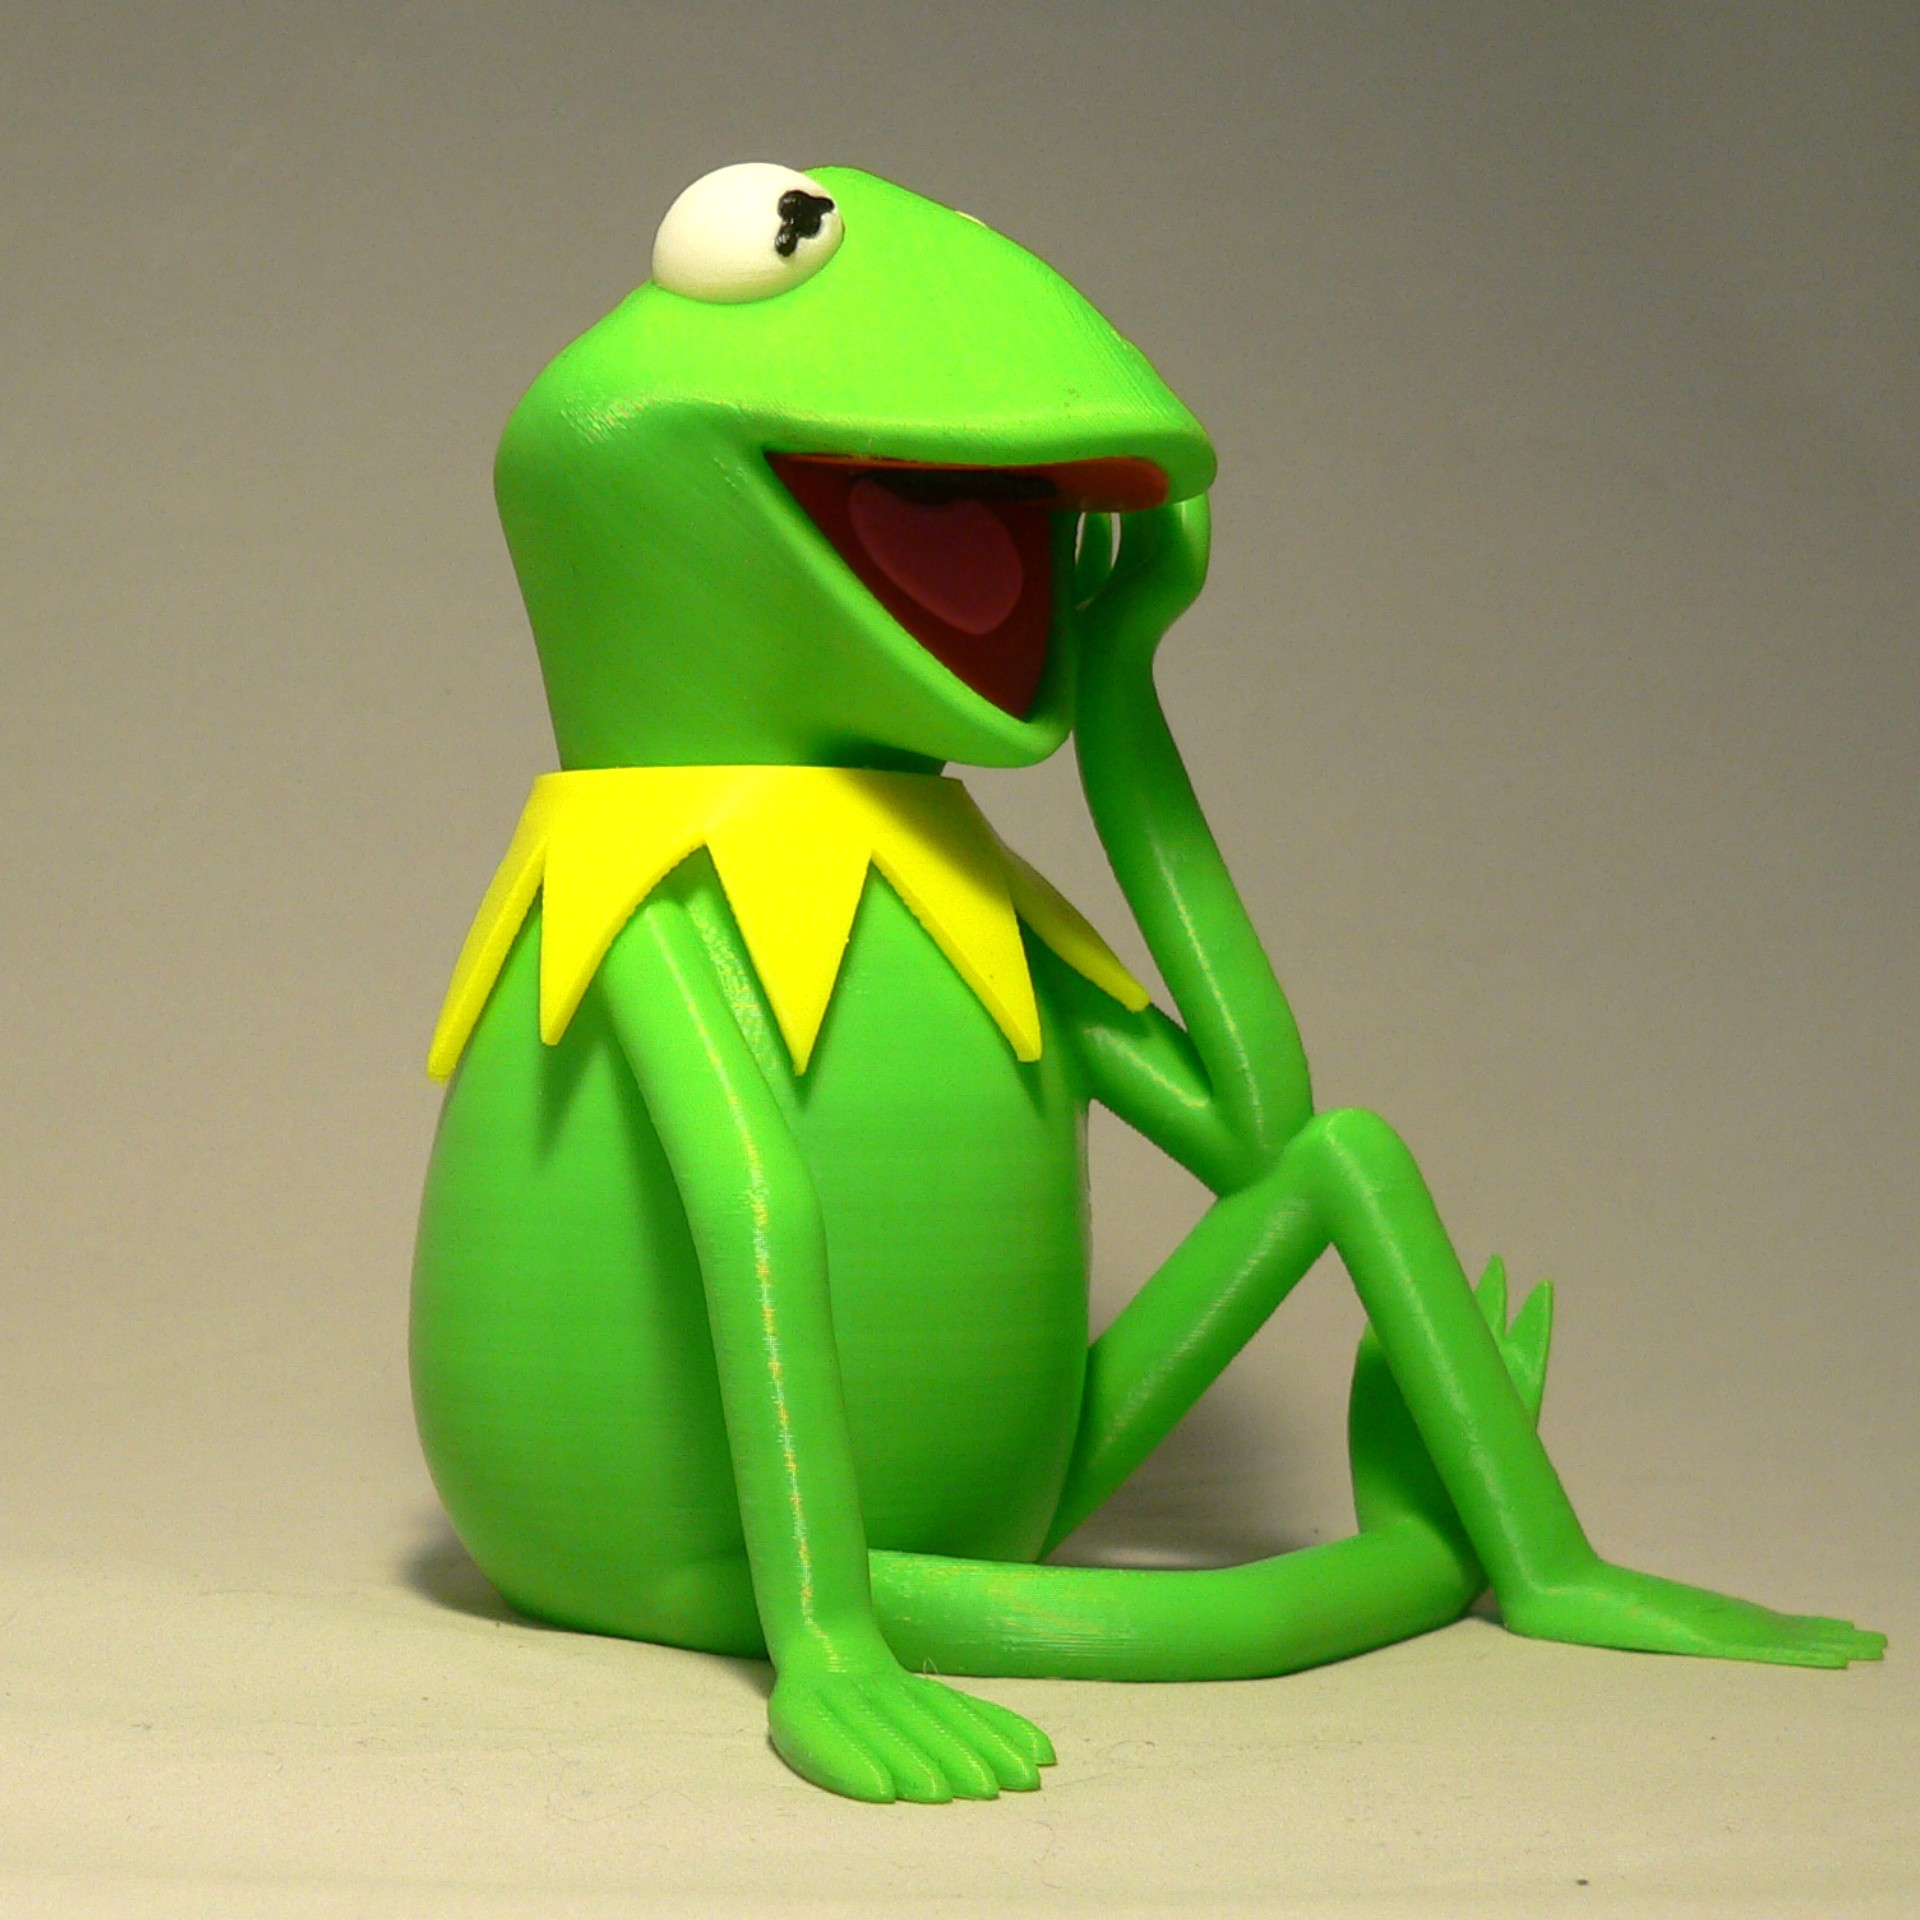 kermit angleb1.jpg Download free STL file Kermit the Frog • 3D printable model, reddadsteve